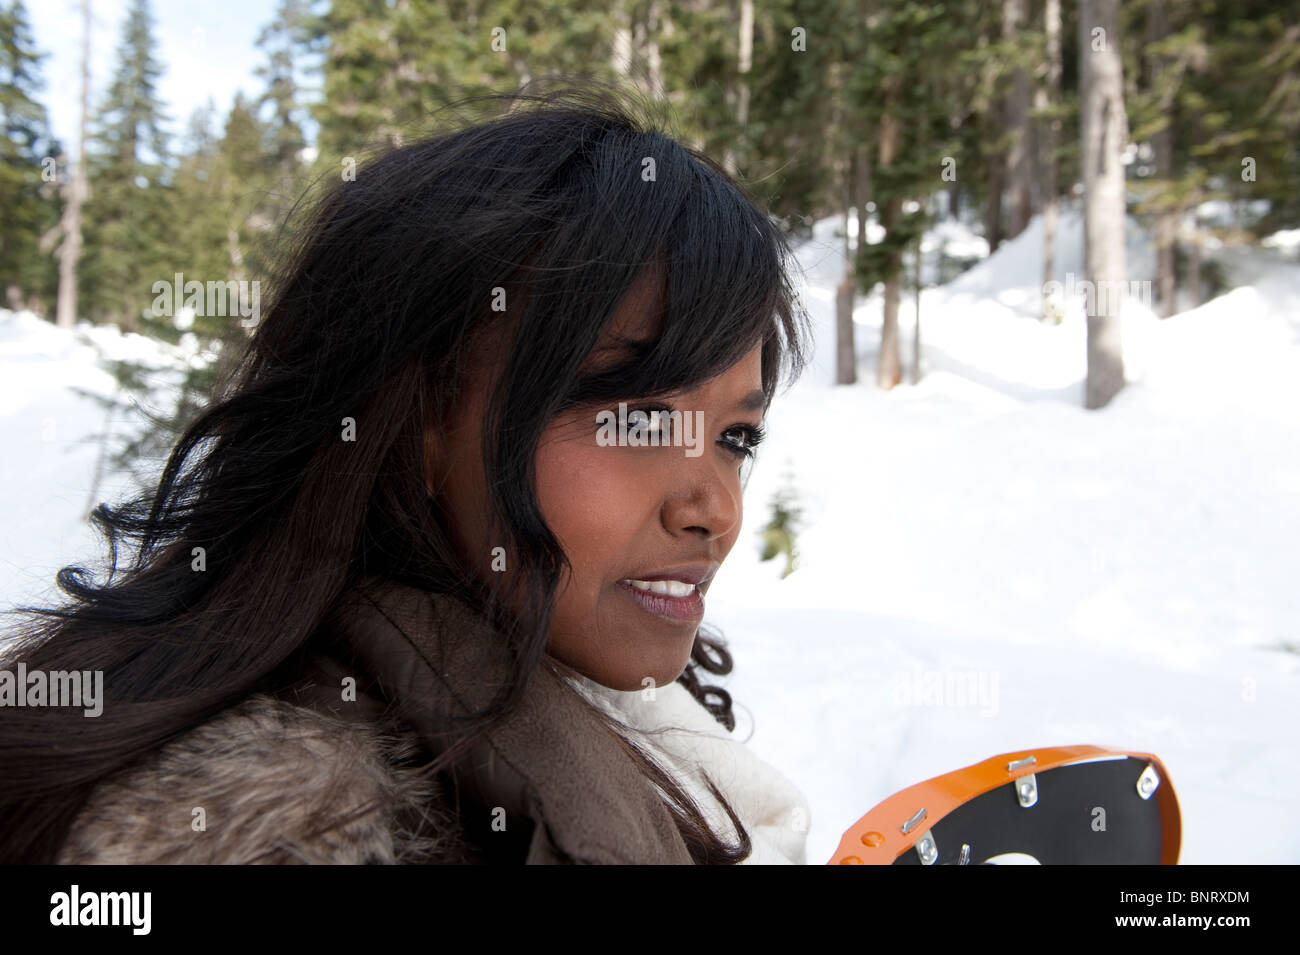 Portrait of a young African American woman holding snowshoes with snowy background. - Stock Image